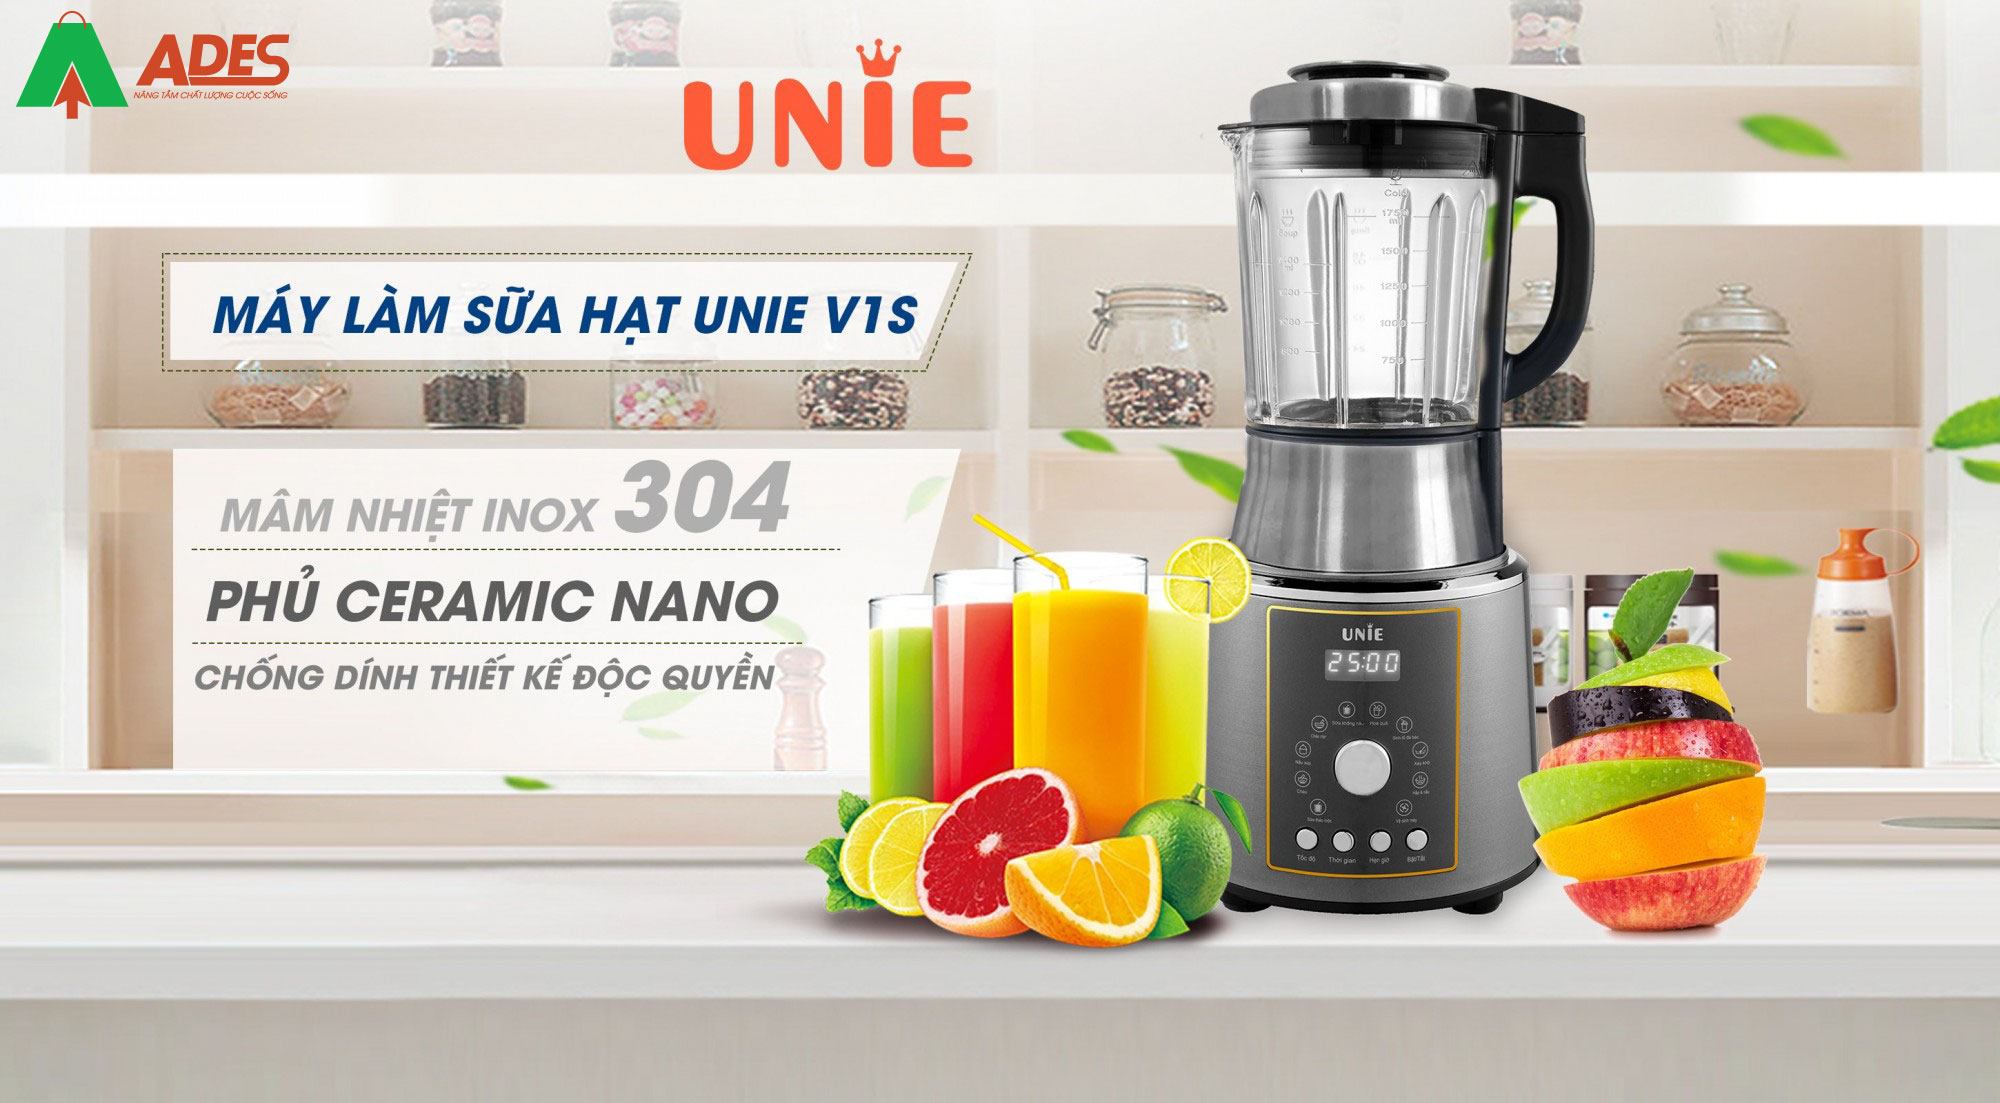 May lam sua hat Unie V1S